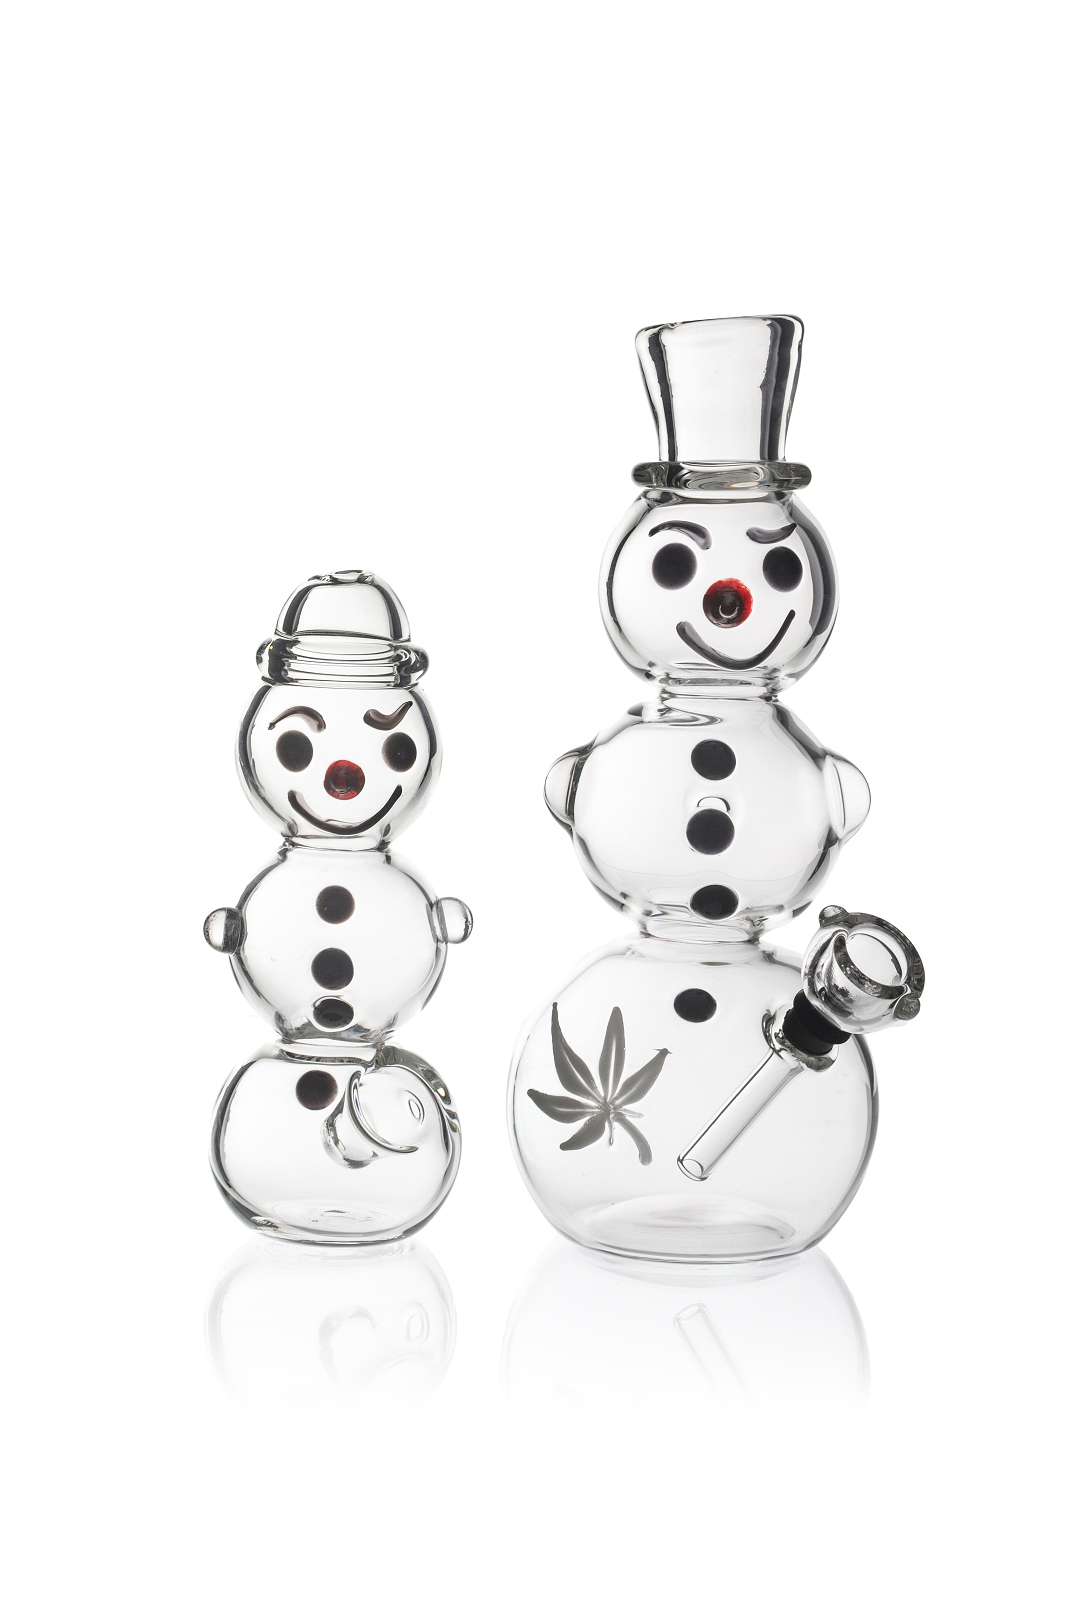 Snowman Pipe And Bong Set Limited Edition Snowman Pipe And Bong Set Limited Edition